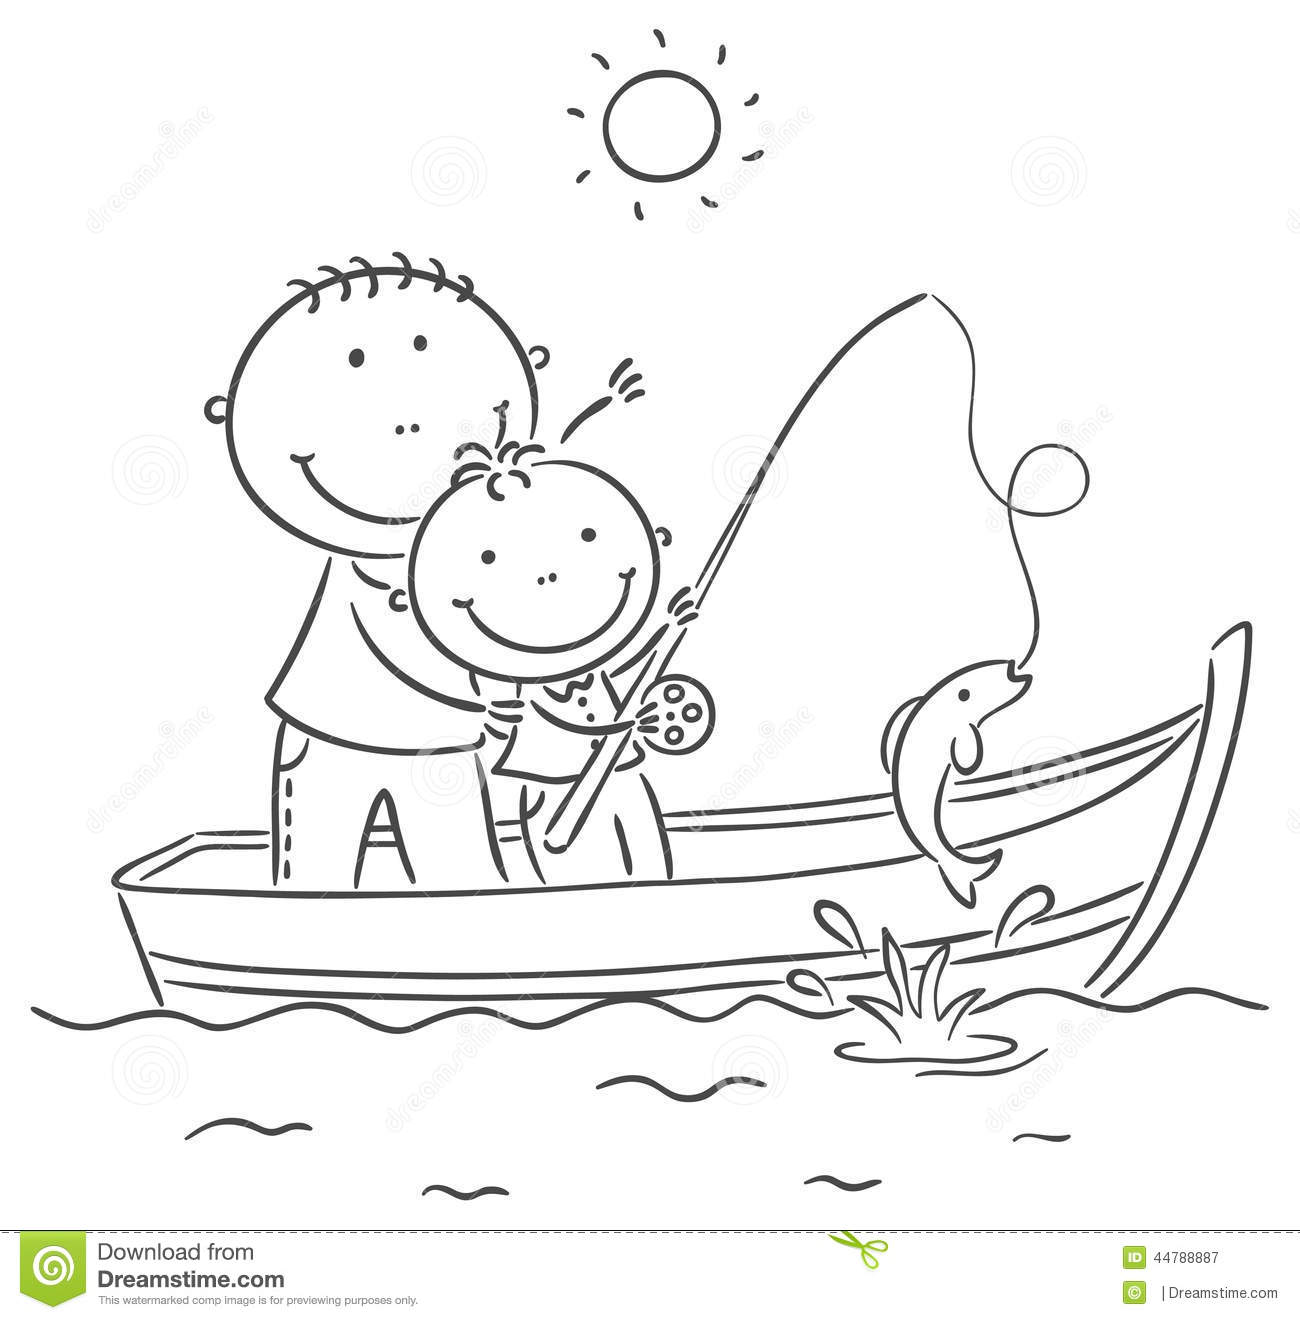 Boy fishing coloring pages - Minicat